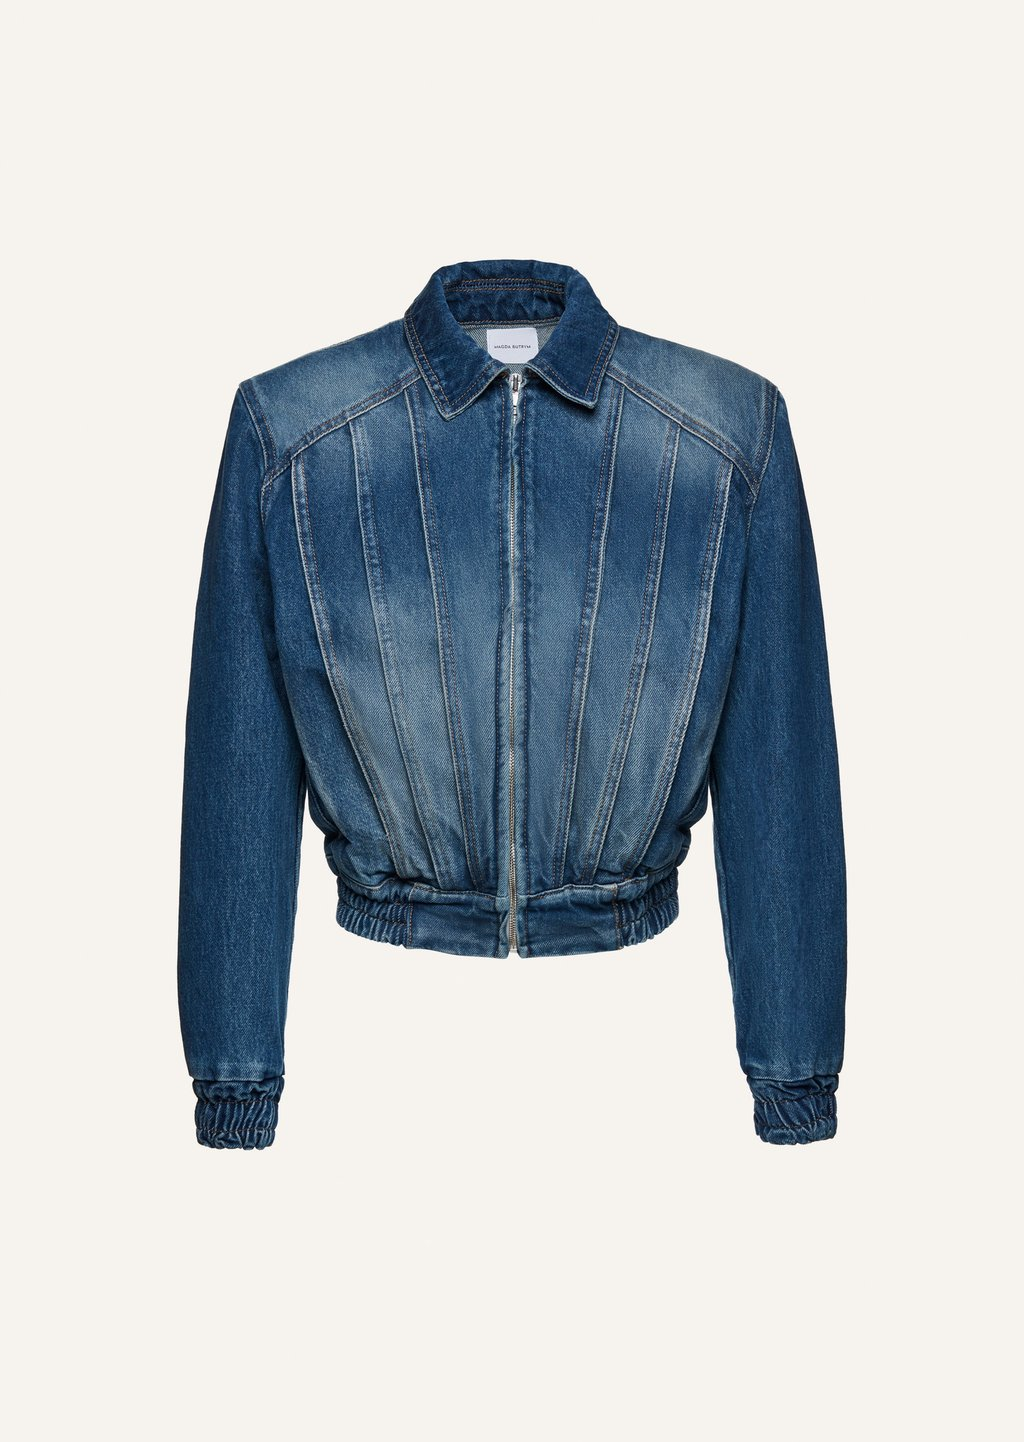 Faded denim bomber jacket in blue by Magda Butrym, available on magdabutrym.com for $775 Elsa Hosk Outerwear Exact Product